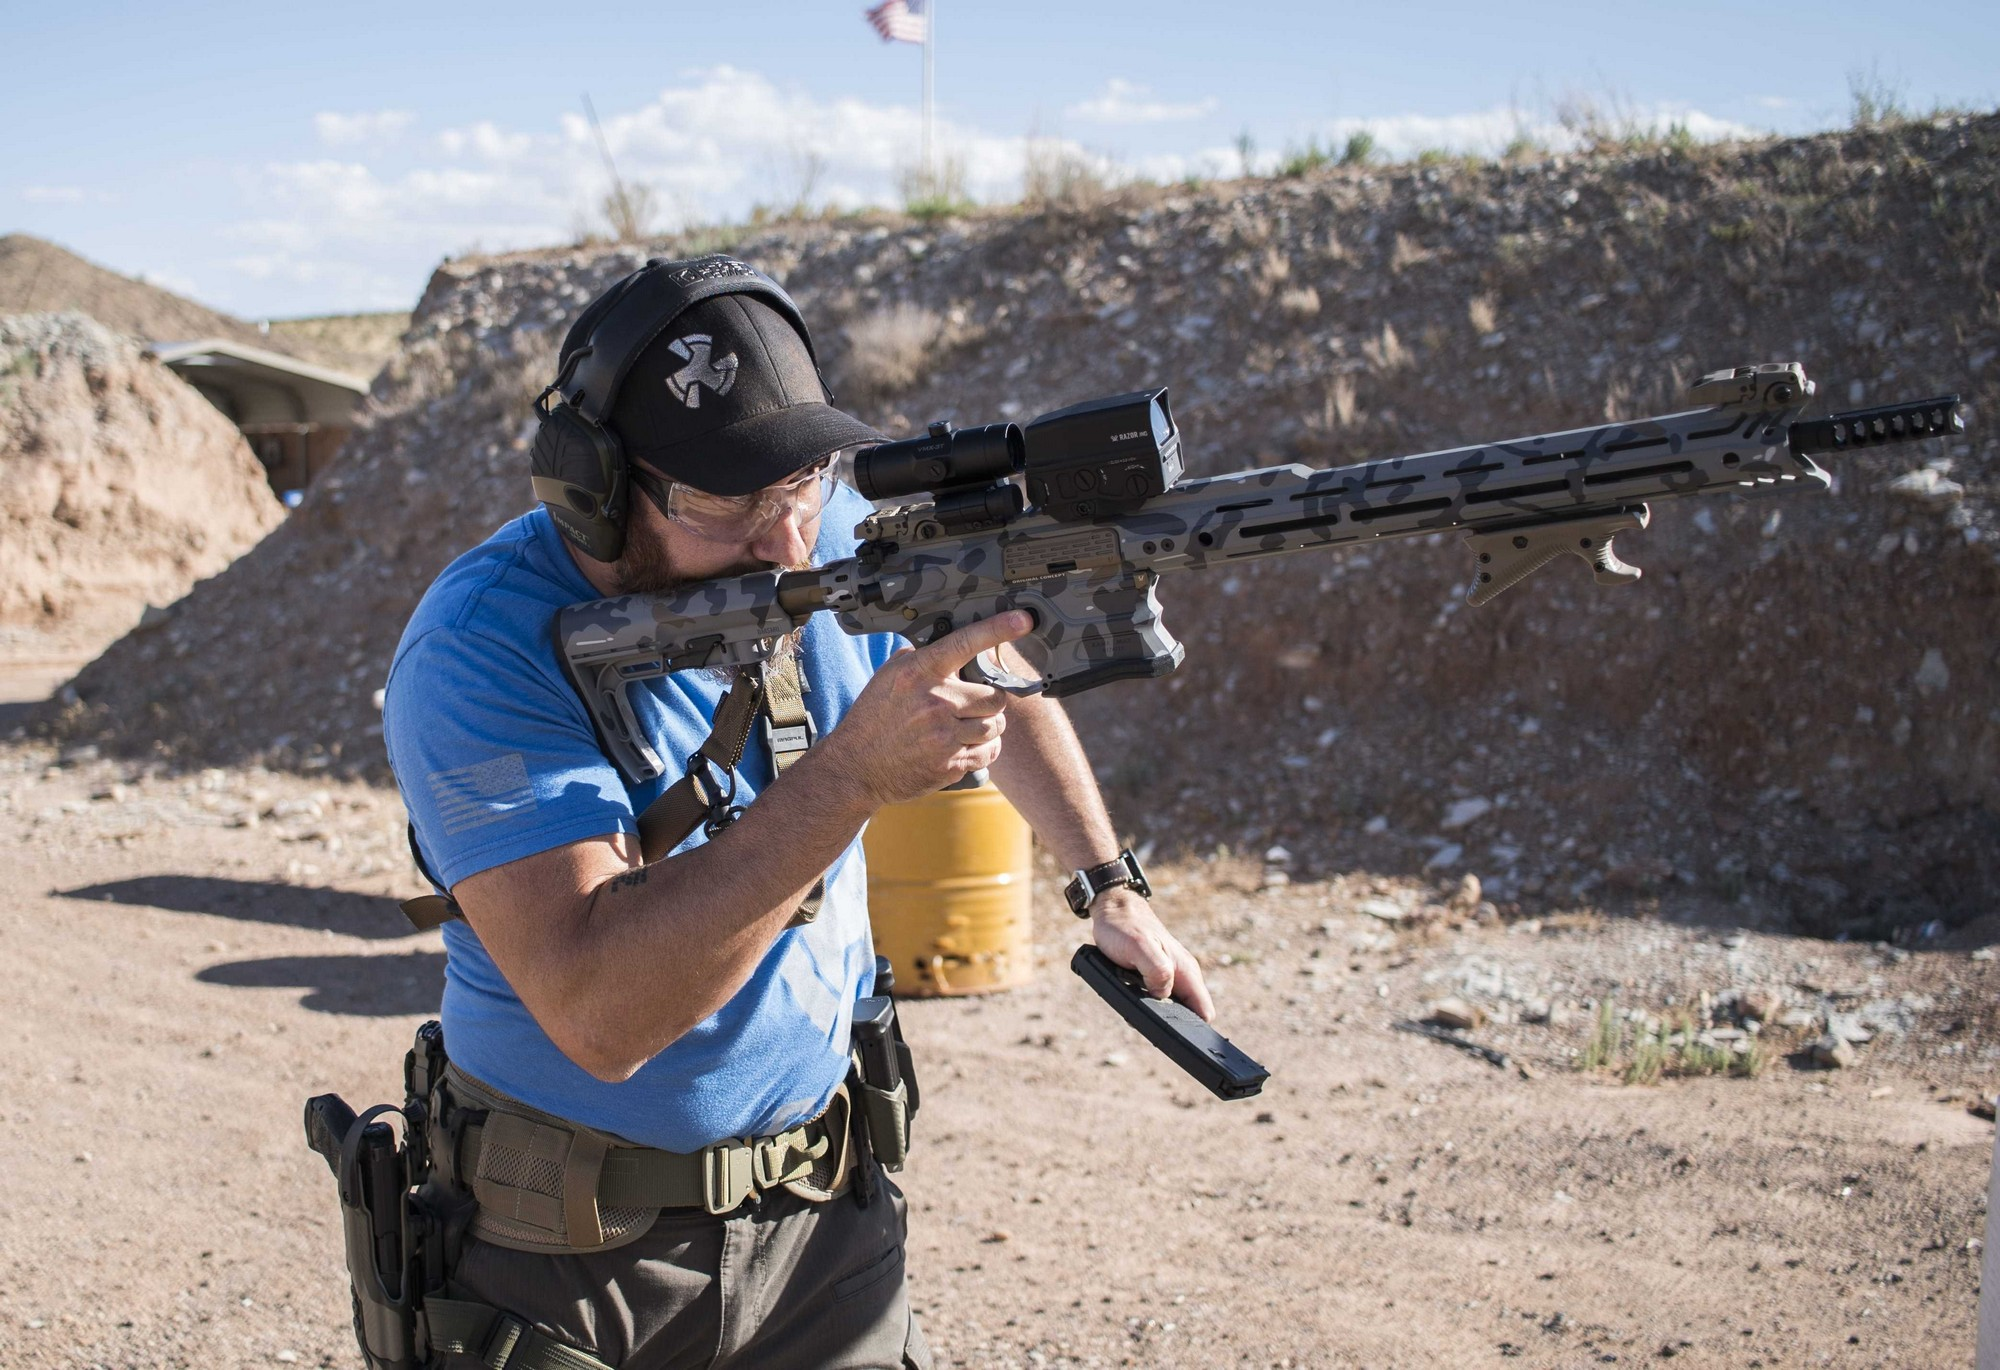 Shooting with the VTX Range from Cobalt Kinetics